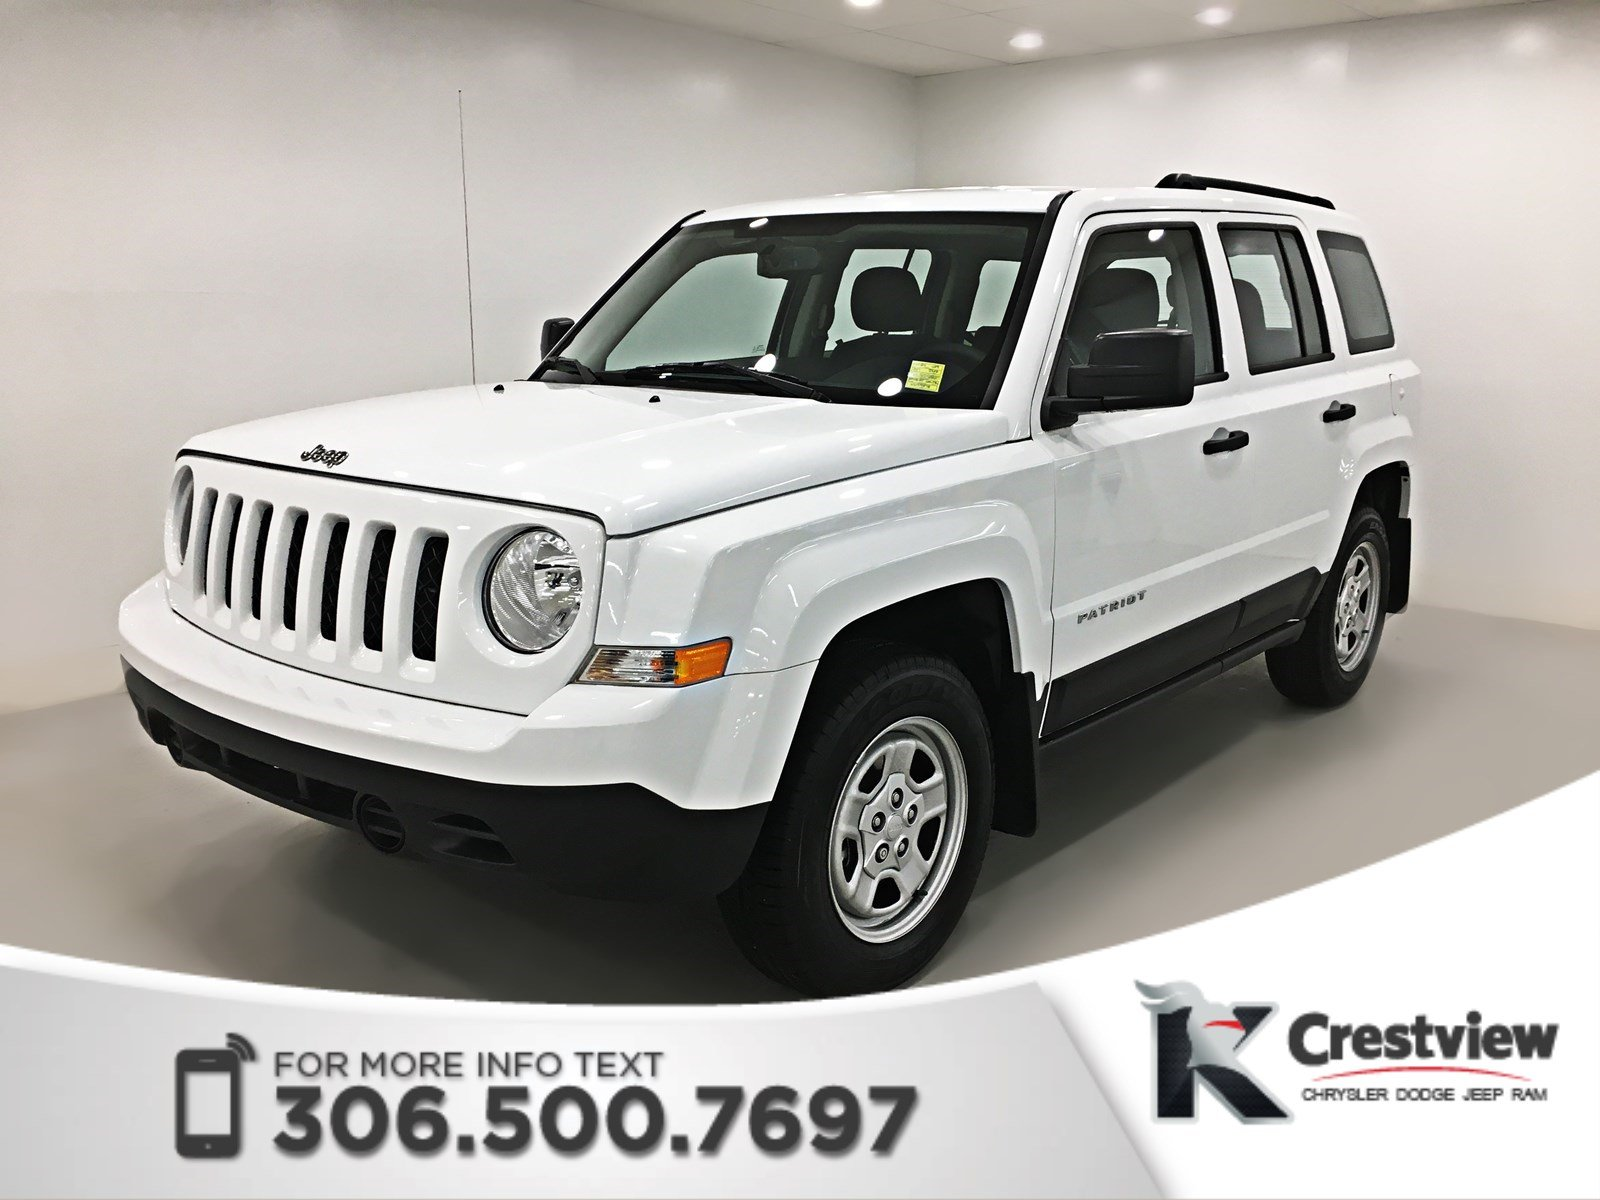 pre owned 2017 jeep patriot sport 4x4 sport utility in regina pp1484 knight automotive group. Black Bedroom Furniture Sets. Home Design Ideas